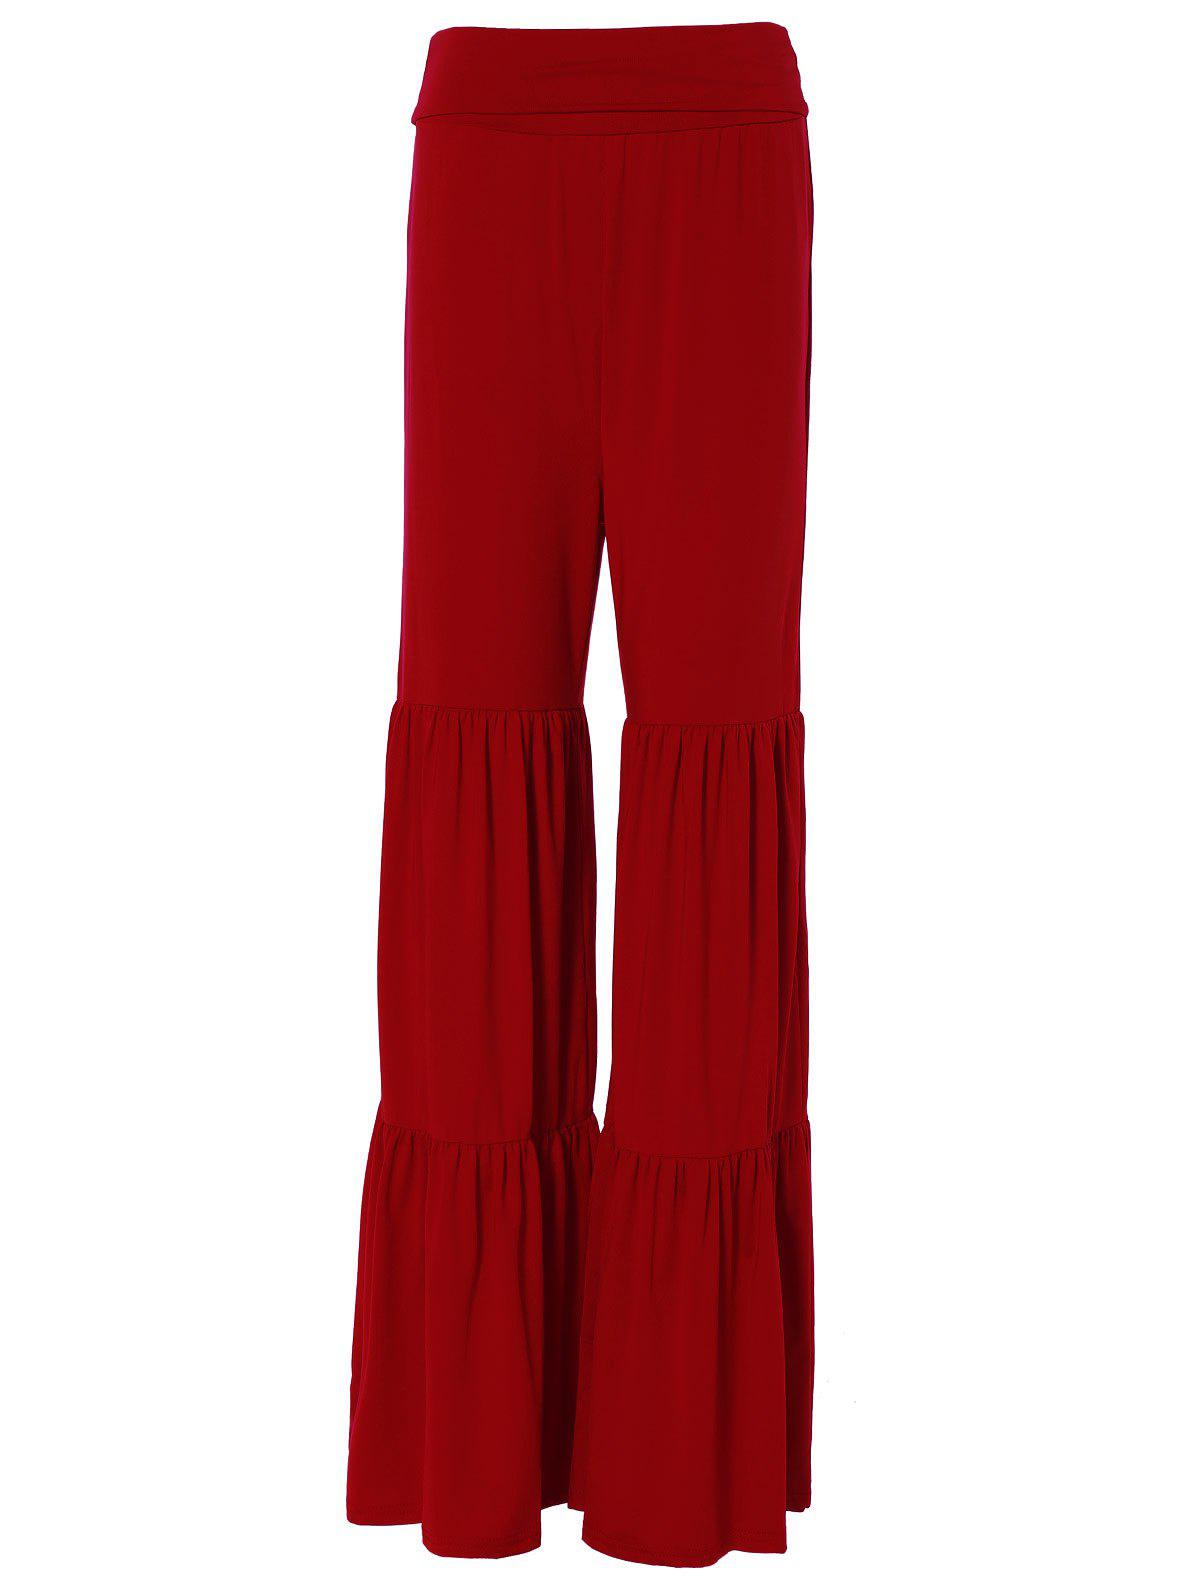 Tiered Ruffled Pants - RED M